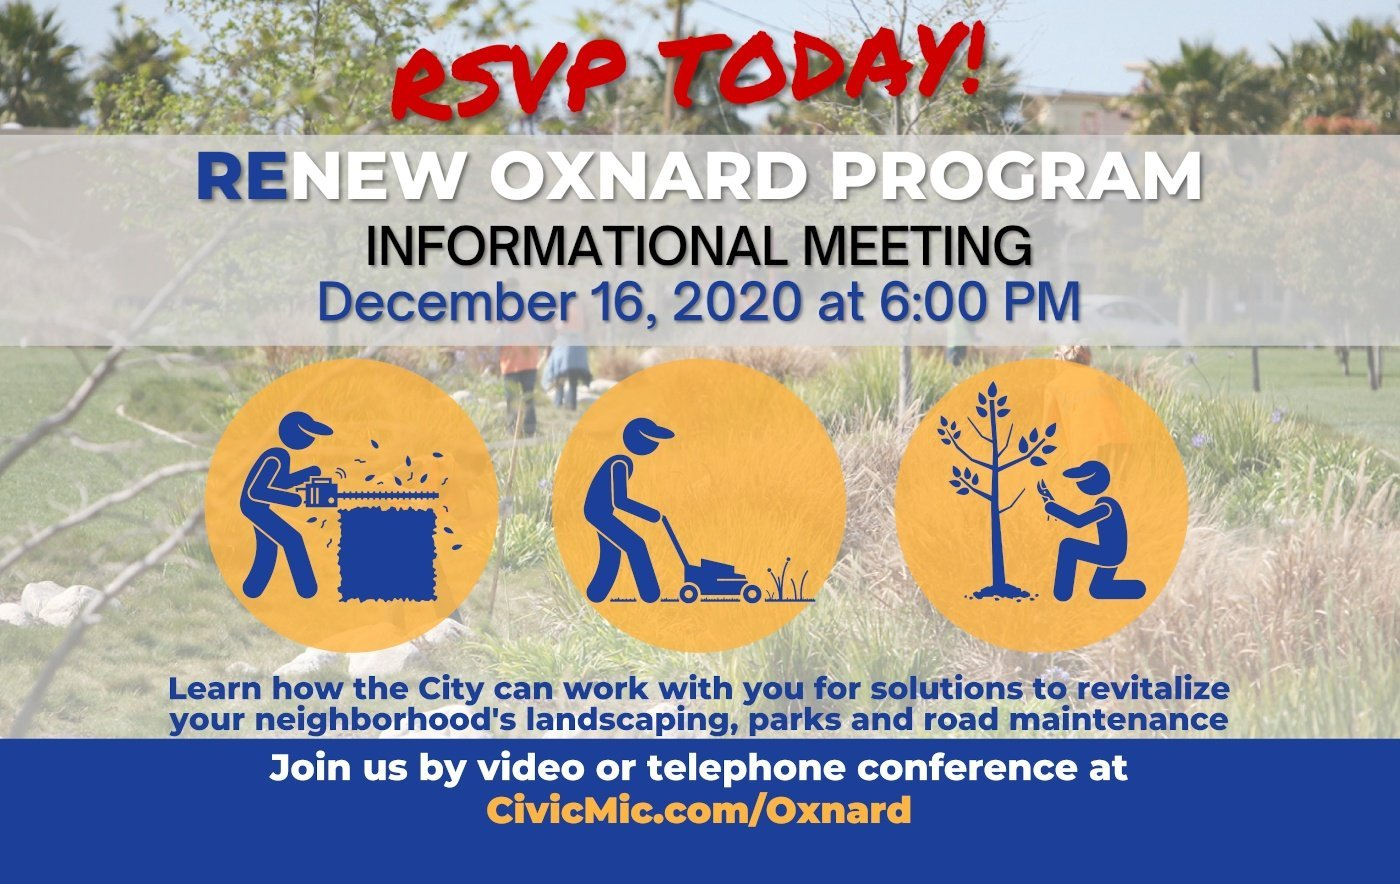 ReNew Oxnard Introduction Meeting Flyer 2 of 2